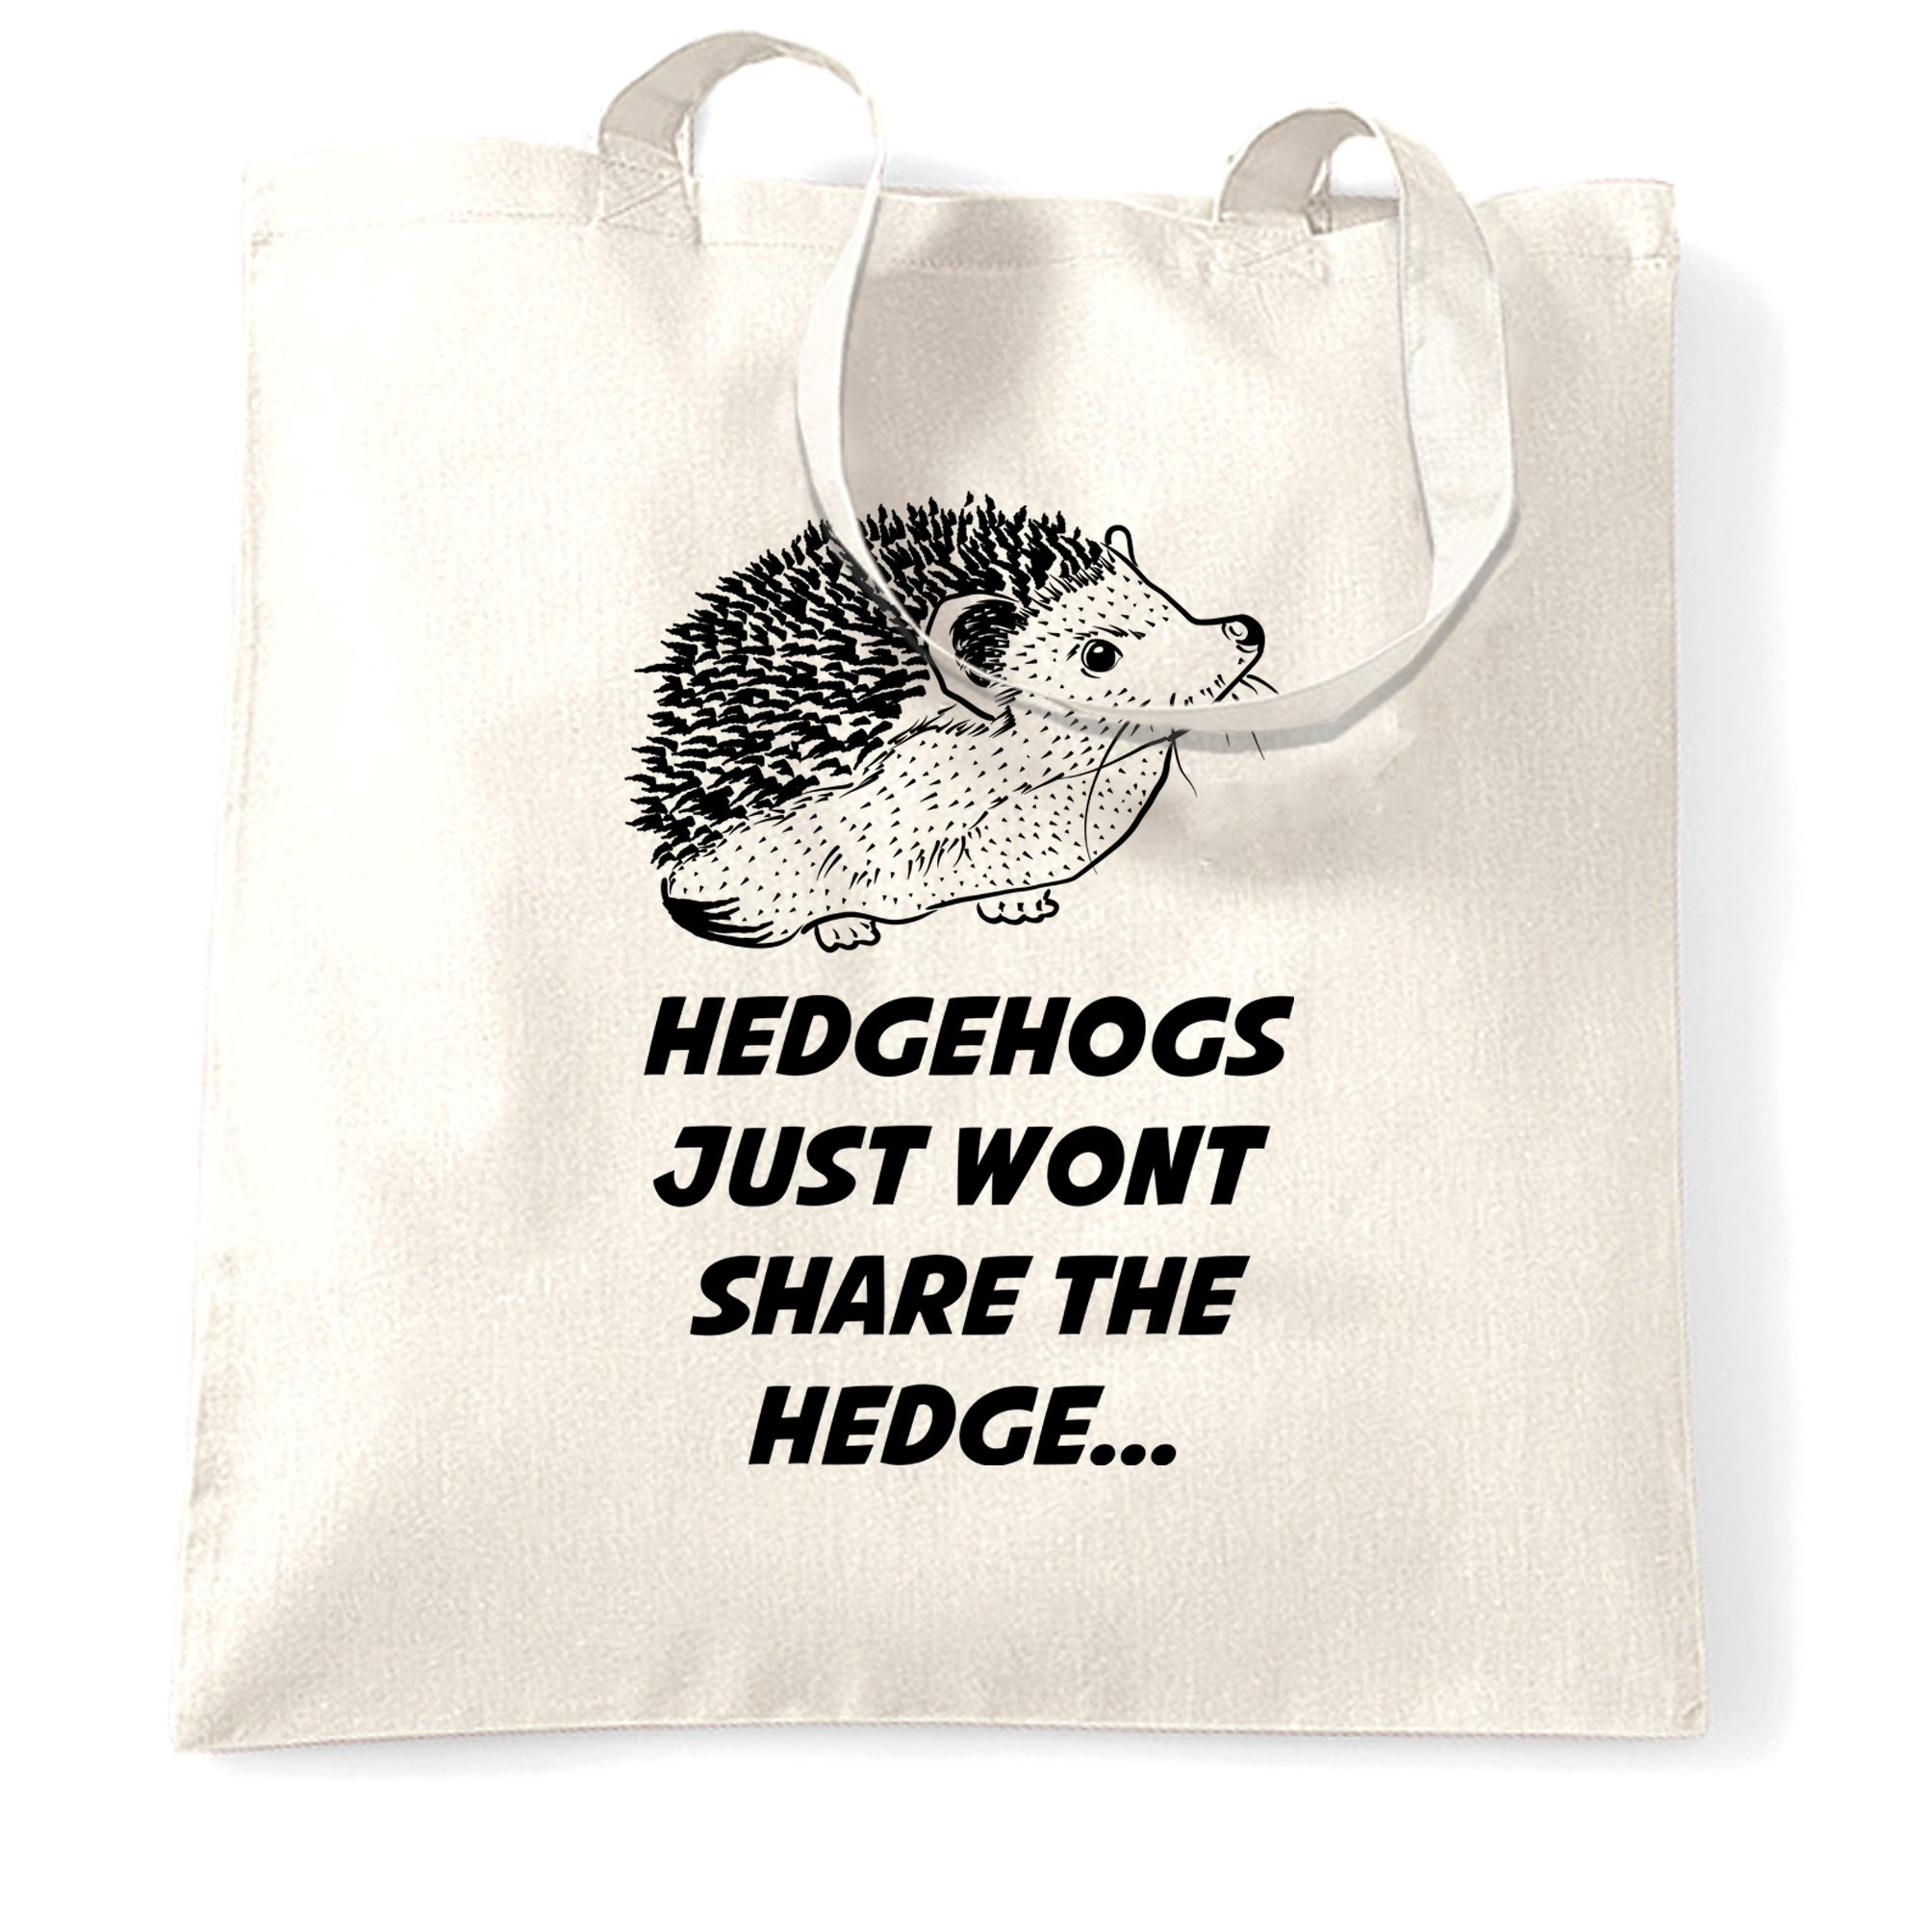 Joke Pun Tote Bag Hedgehogs Just Won/'t Share The Hedge Novelty Slogan